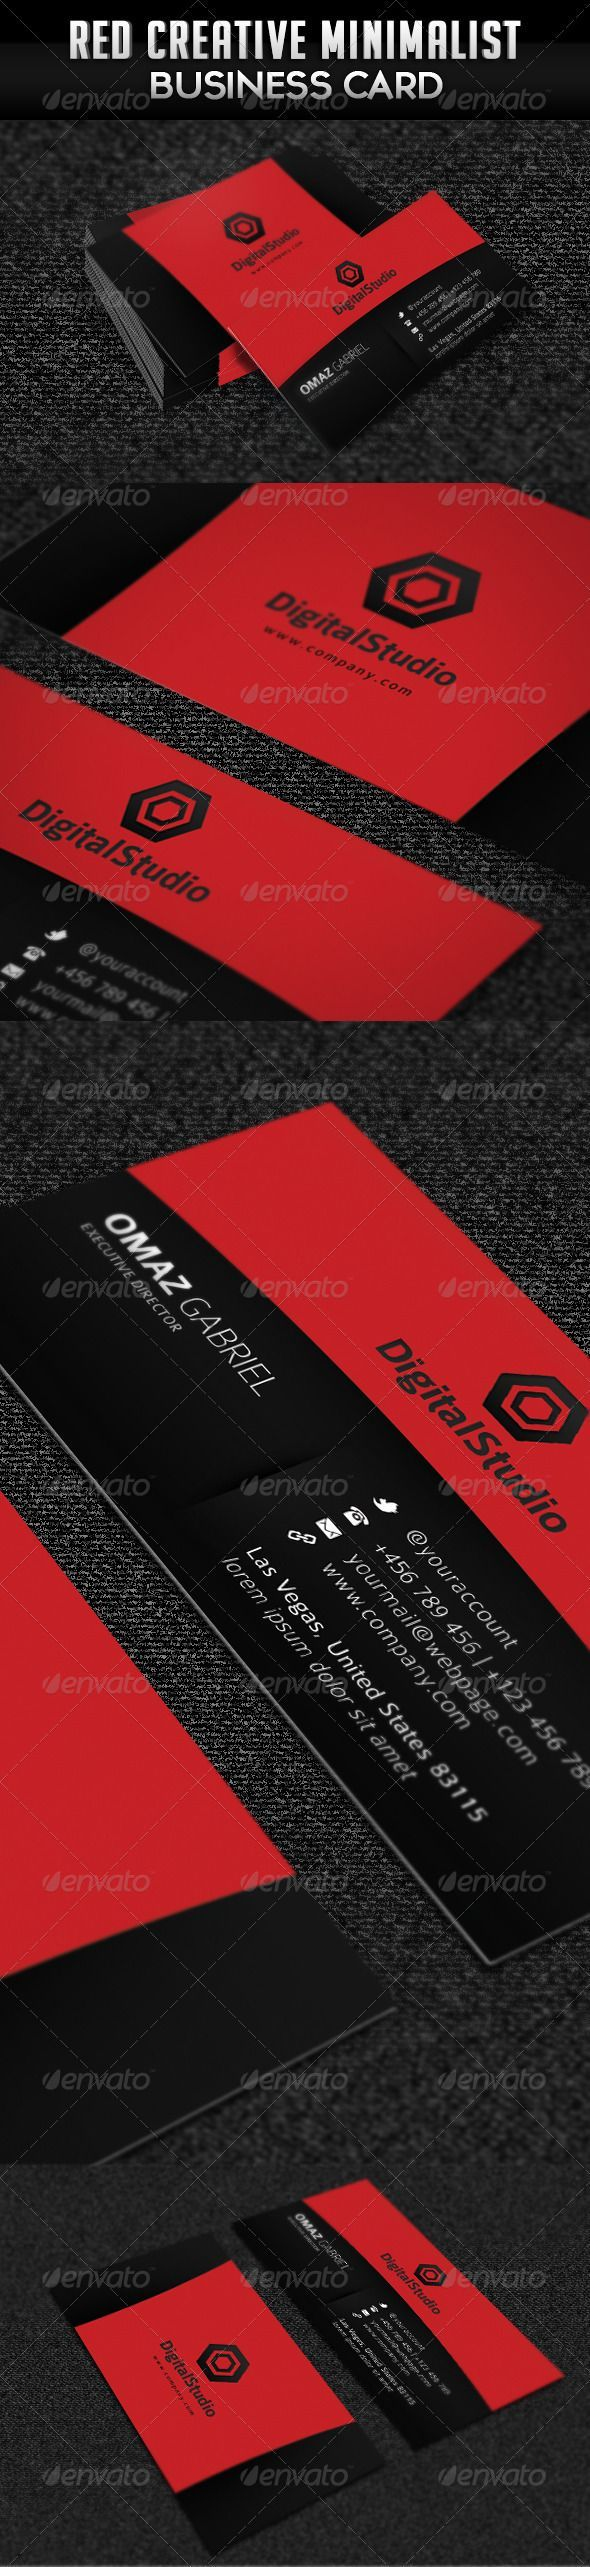 46 best unusual business card designs images on pinterest card buy red creative minimalist business card by ngelamang on graphicriver general description business cards especially for any other type of business easy magicingreecefo Image collections